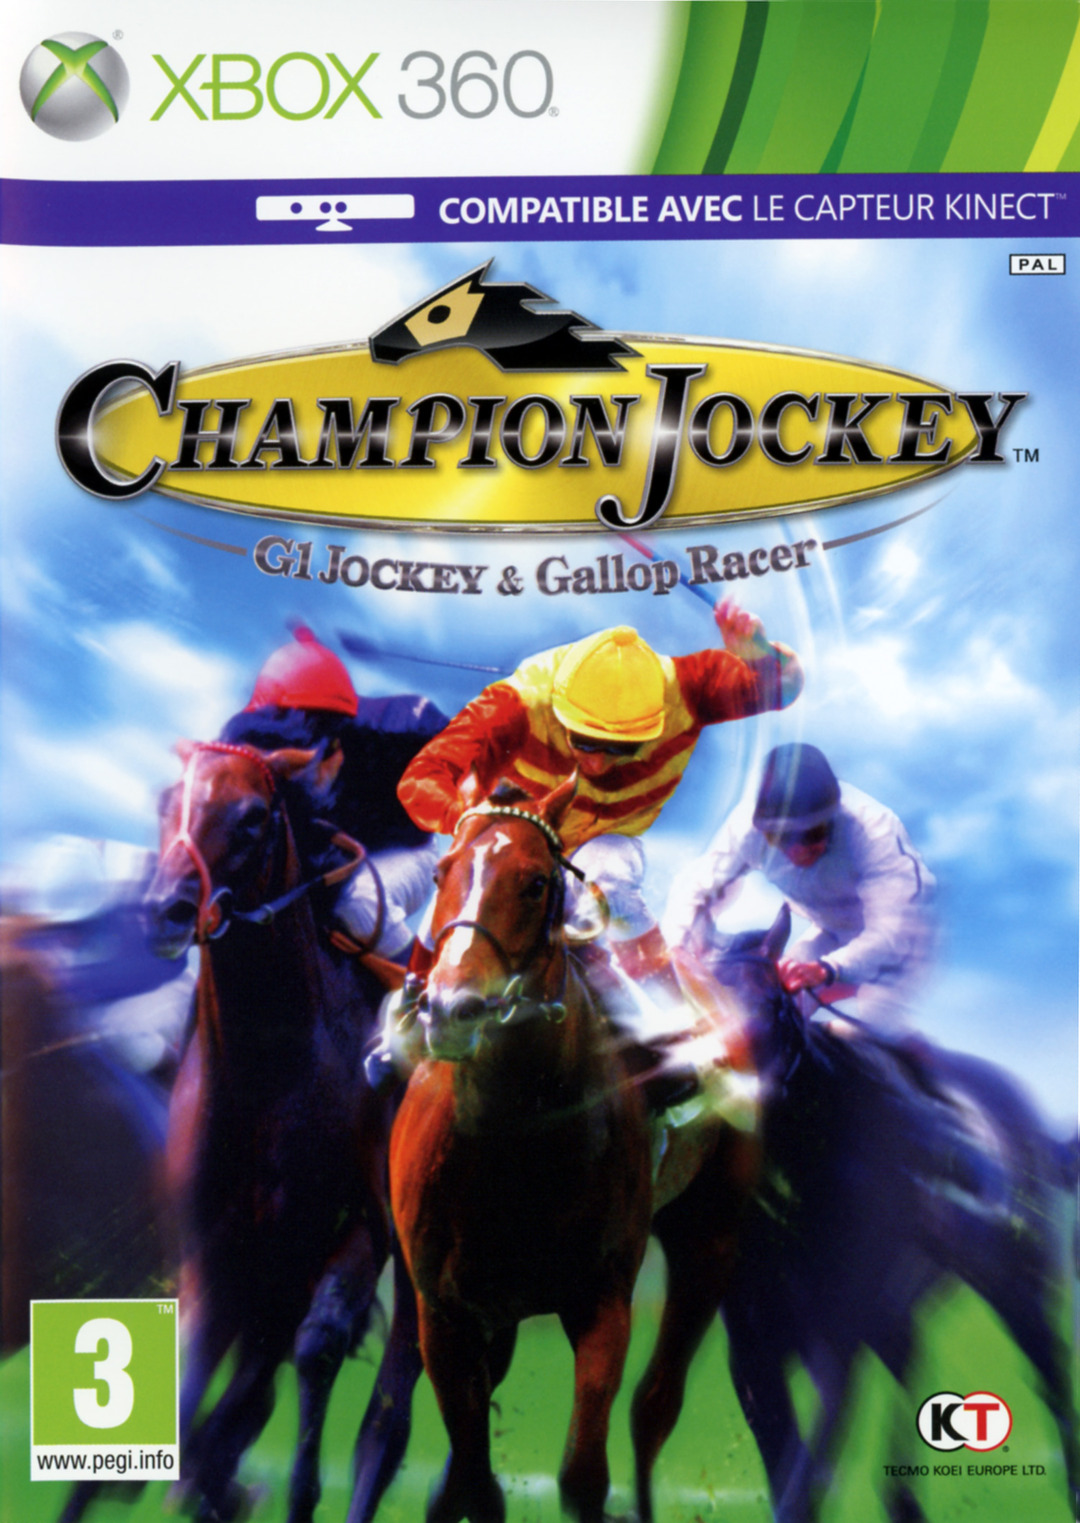 champion jockey g1 jockey gallop racer sur xbox 360. Black Bedroom Furniture Sets. Home Design Ideas